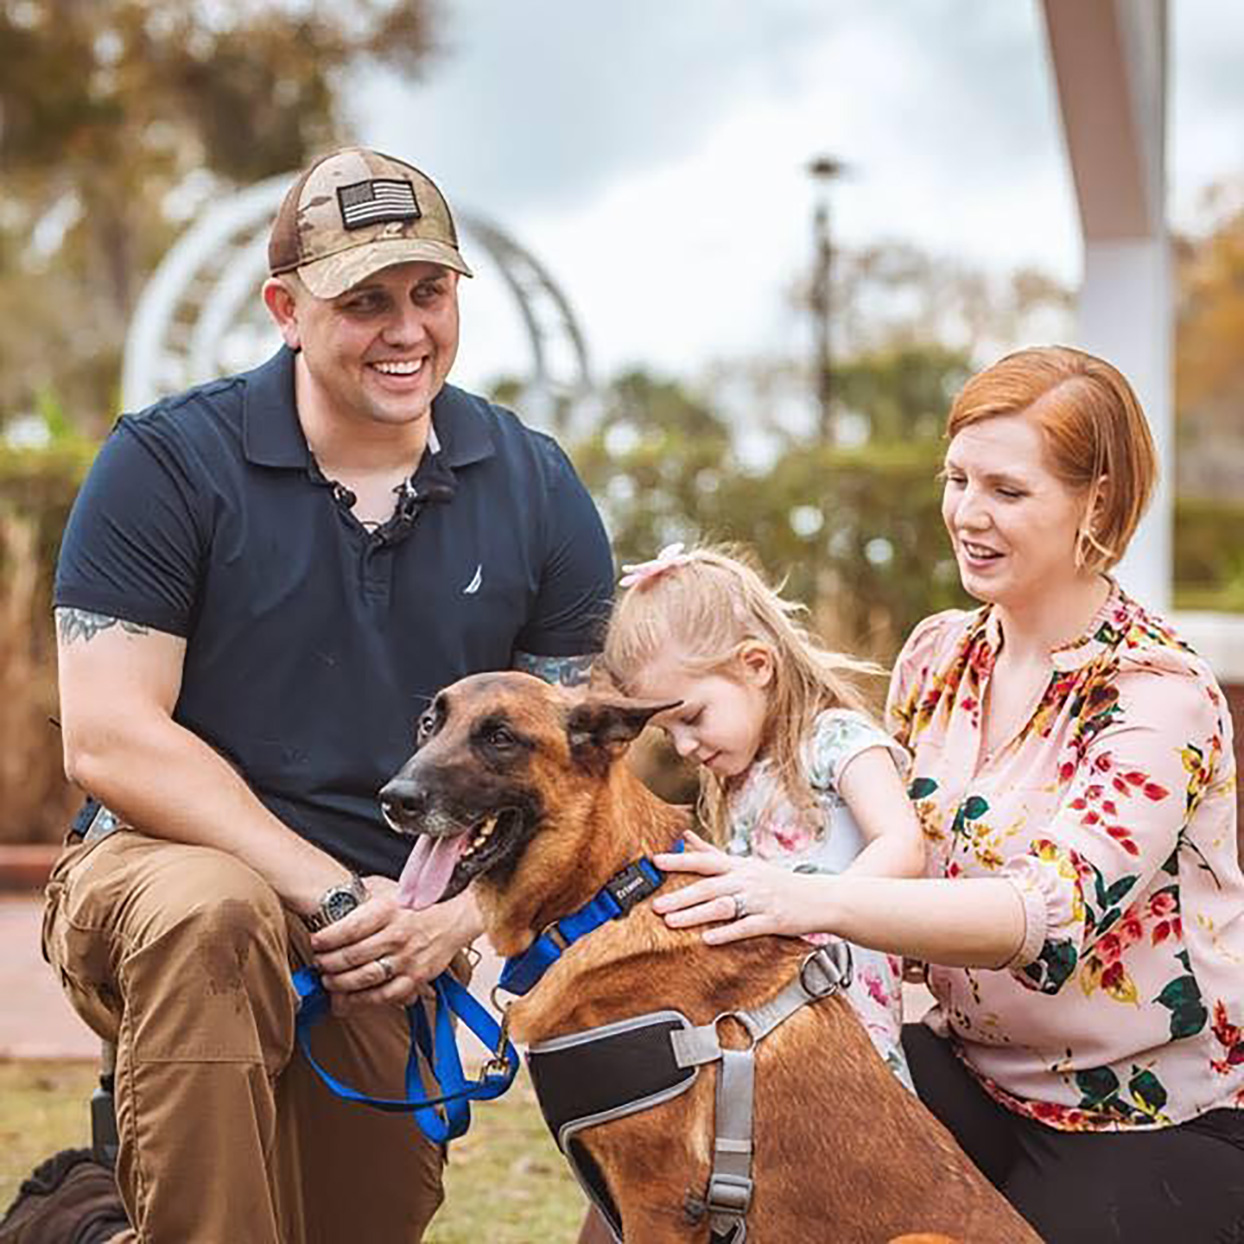 Staff Sgt. Charles Ogin and family are reunified with military work dog Rrobiek